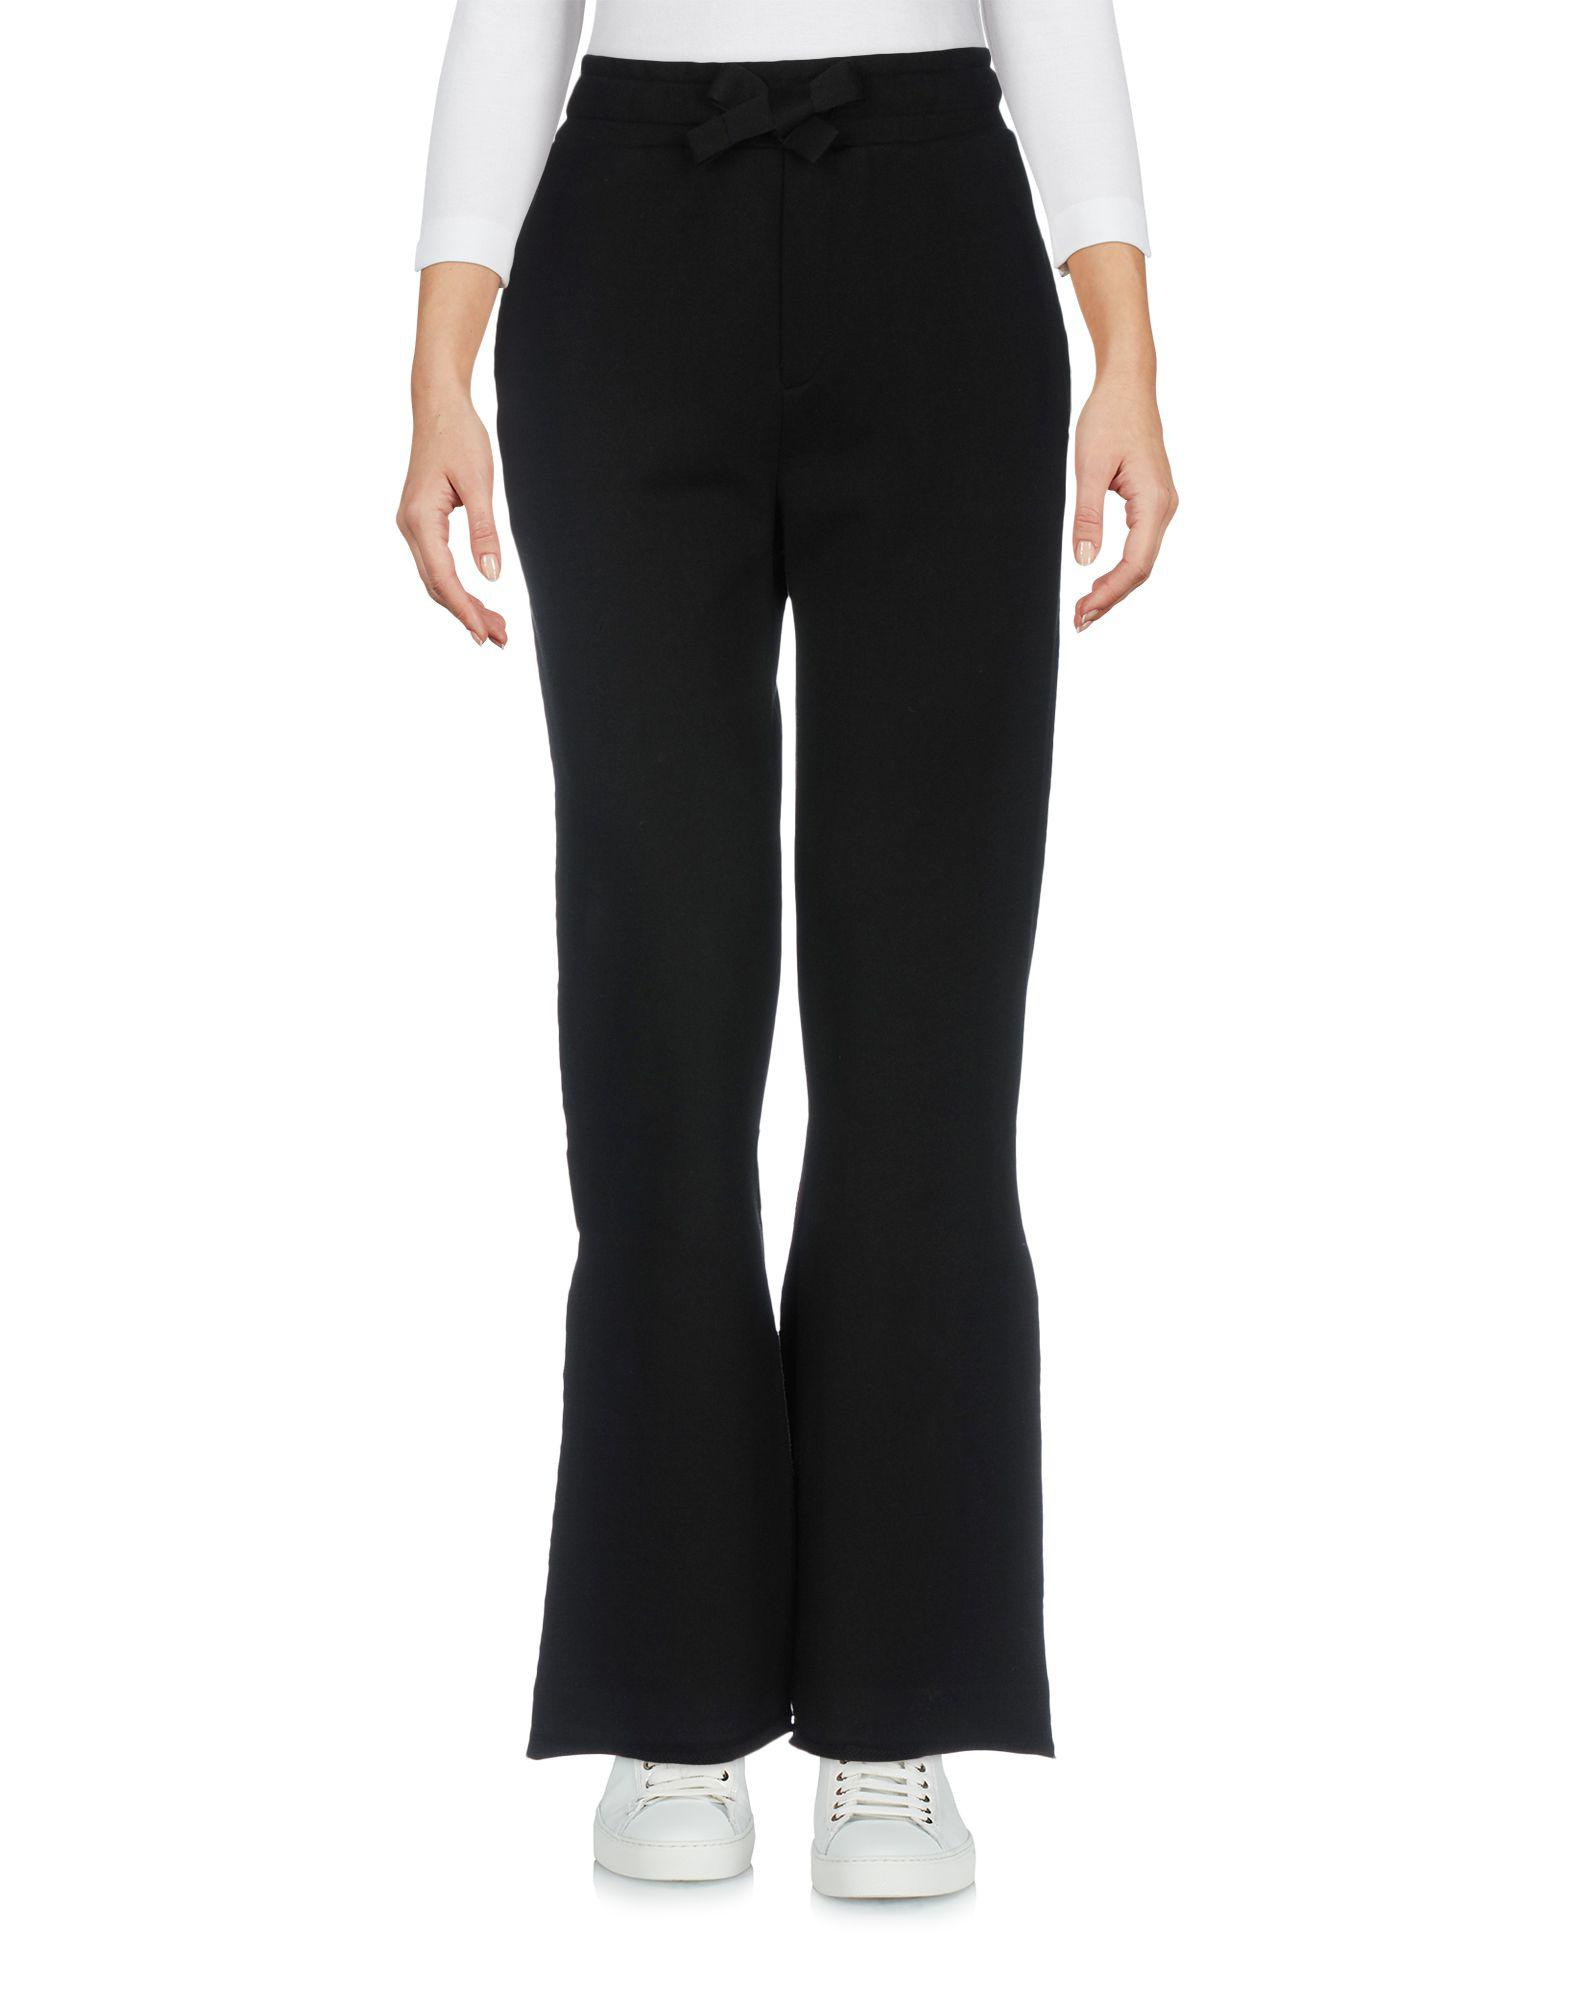 TROUSERS - Casual trousers Sjyp Outlet Geniue Stockist z9owHO2z